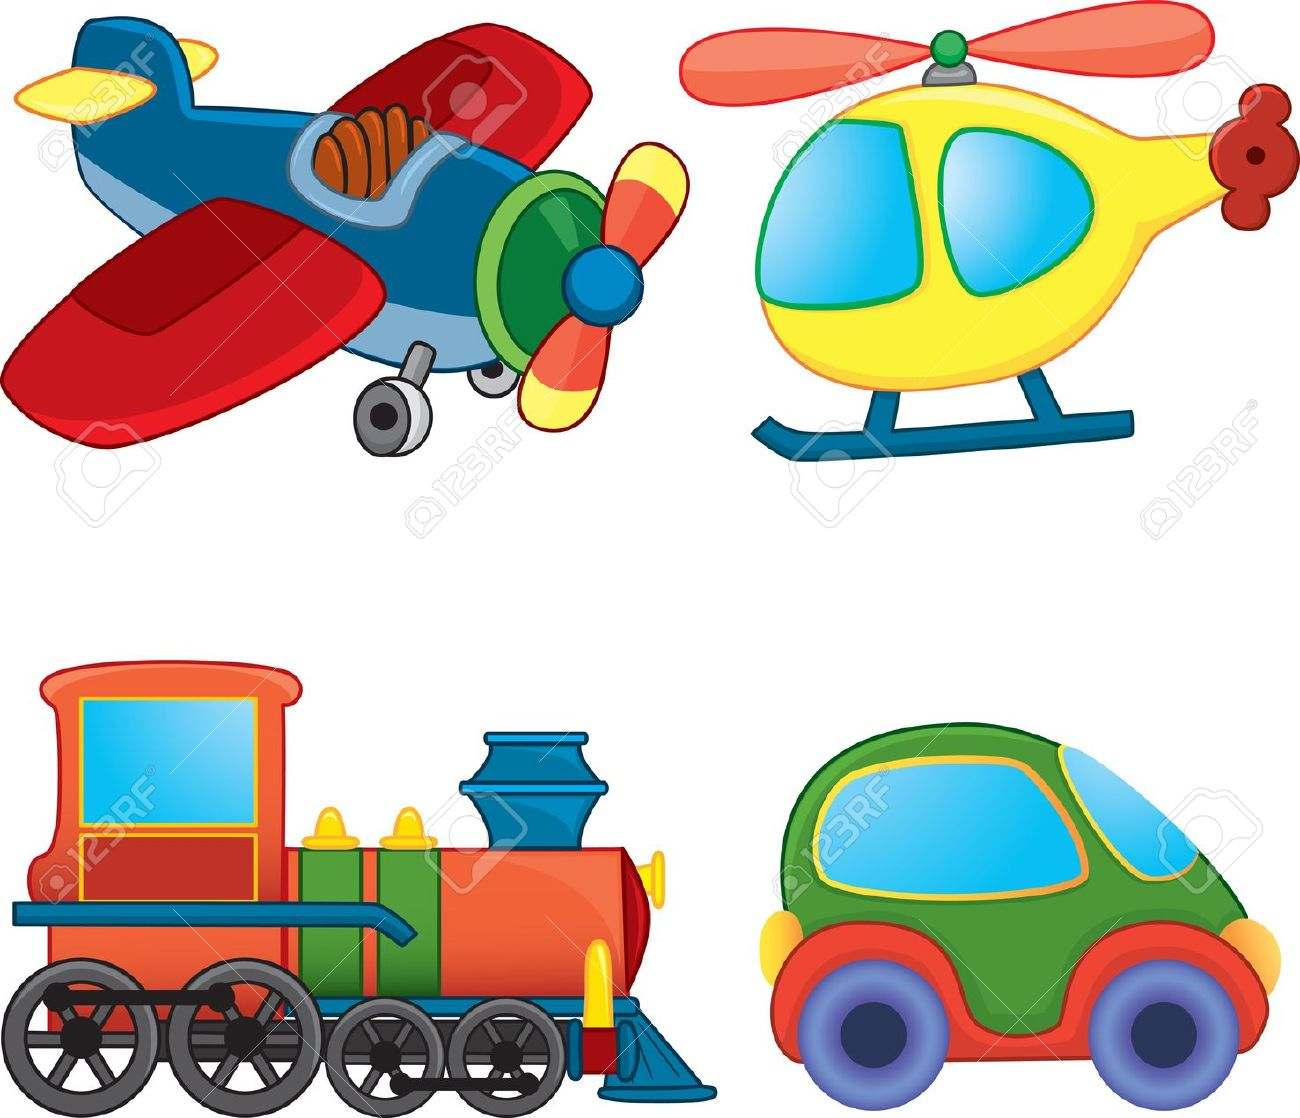 Transport Toys. Royalty Free Cliparts, Vectors, And Stock.